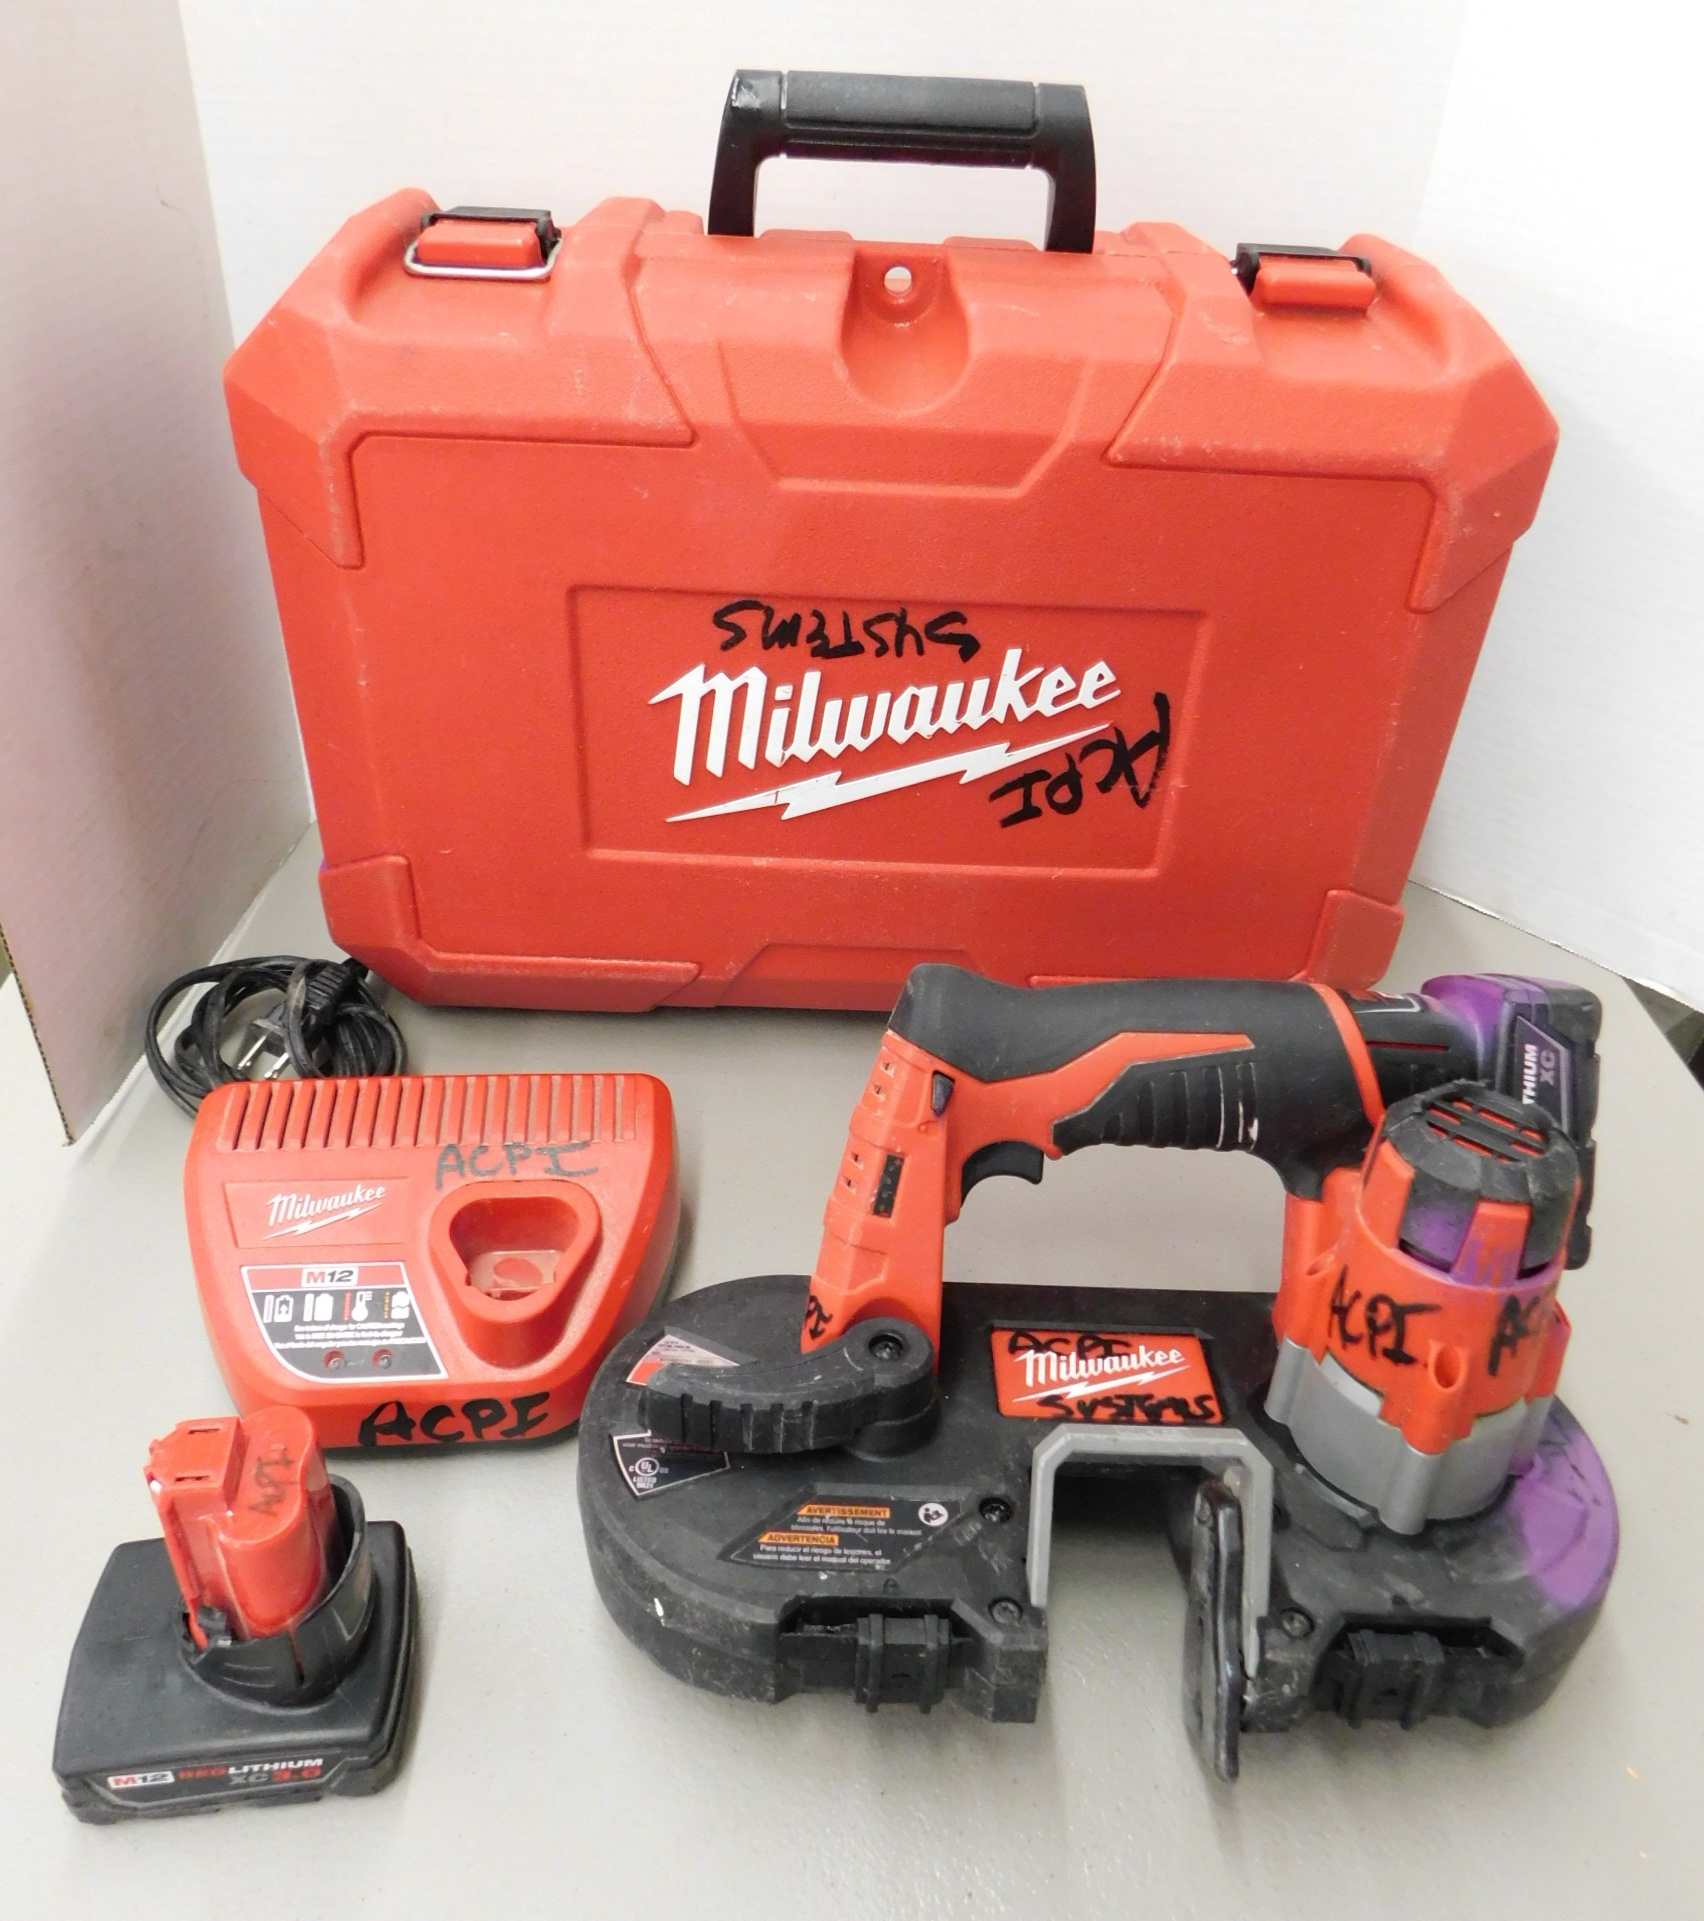 Lot 262 - Milwaukee Model 2429-20 12V Cordless Portable Bandsaw with Battery and Charger